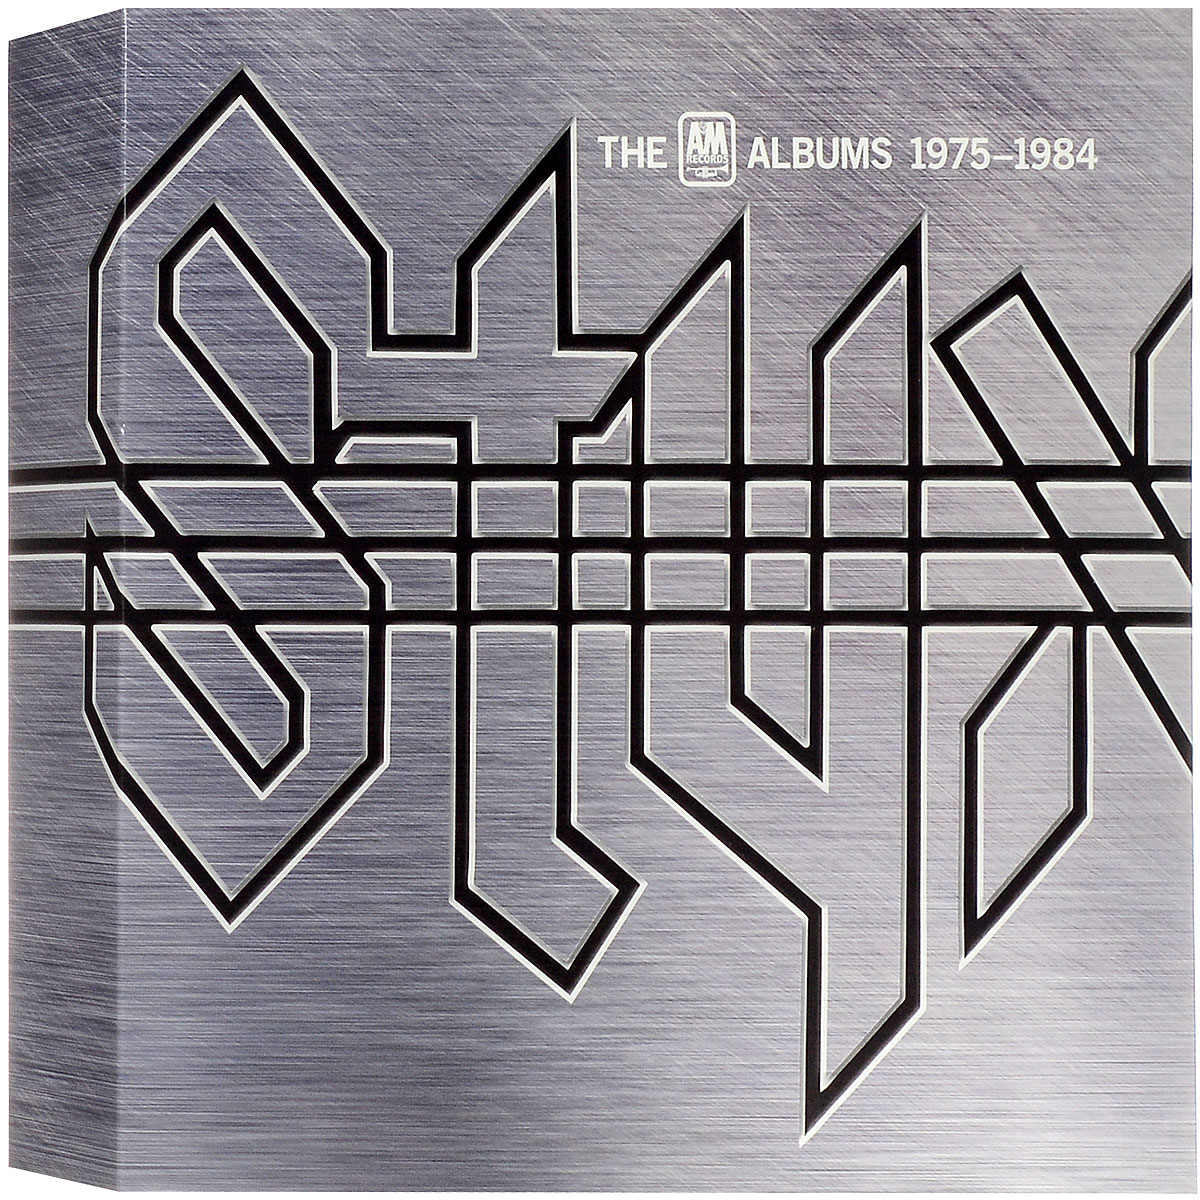 Styx Styx. The A&M Years 1975-1984 (LP) styx styx the best of times the best of styx